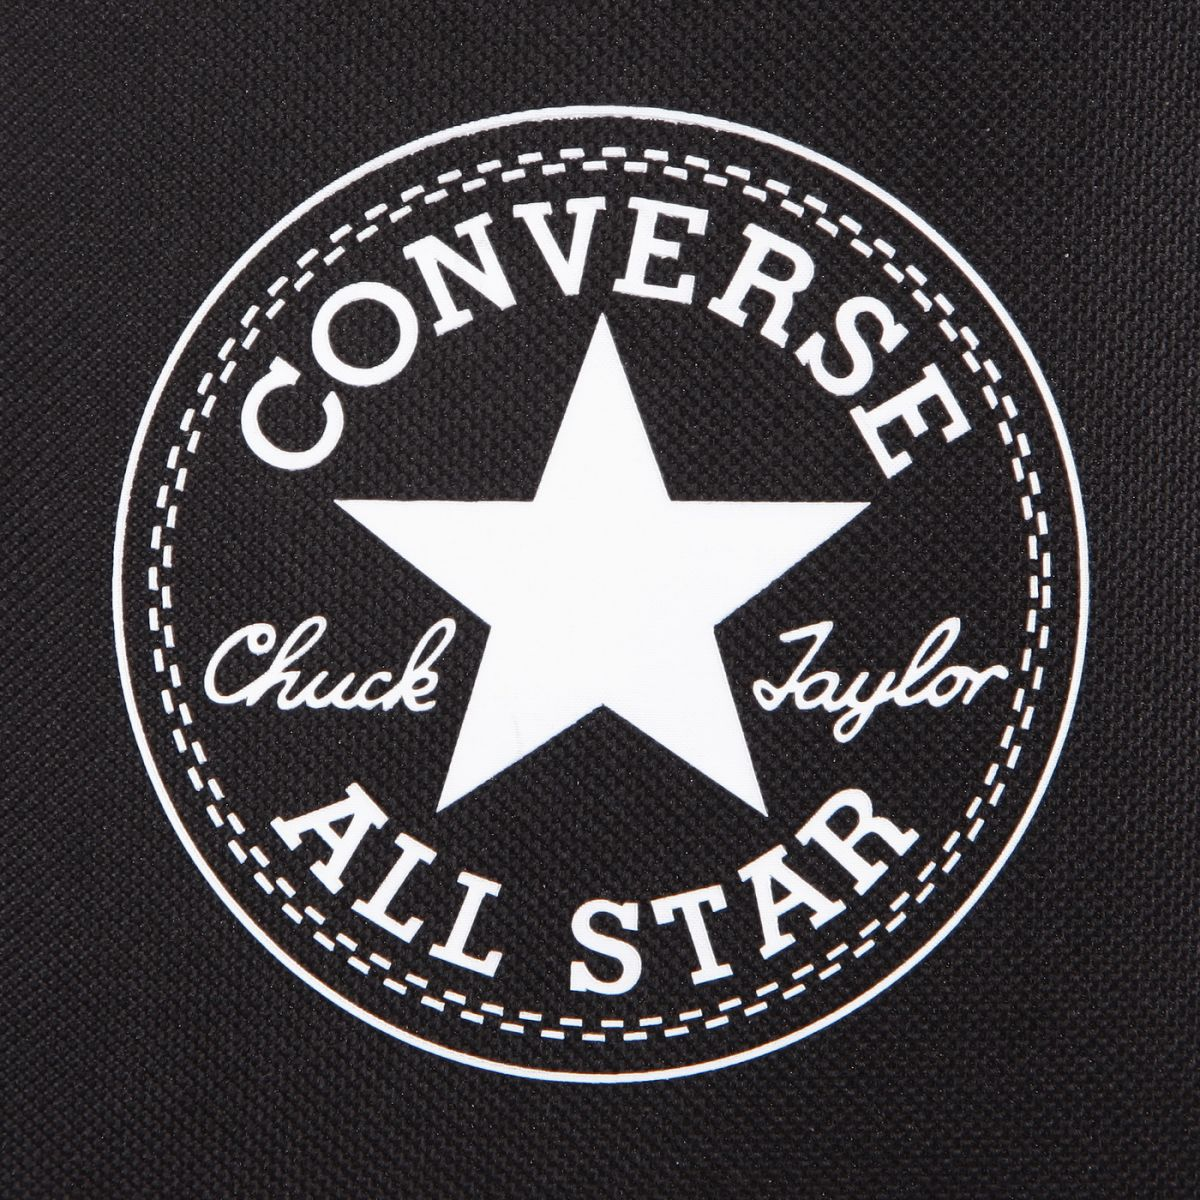 Converse All Star Symbol Image Collections Meaning Of This Symbol